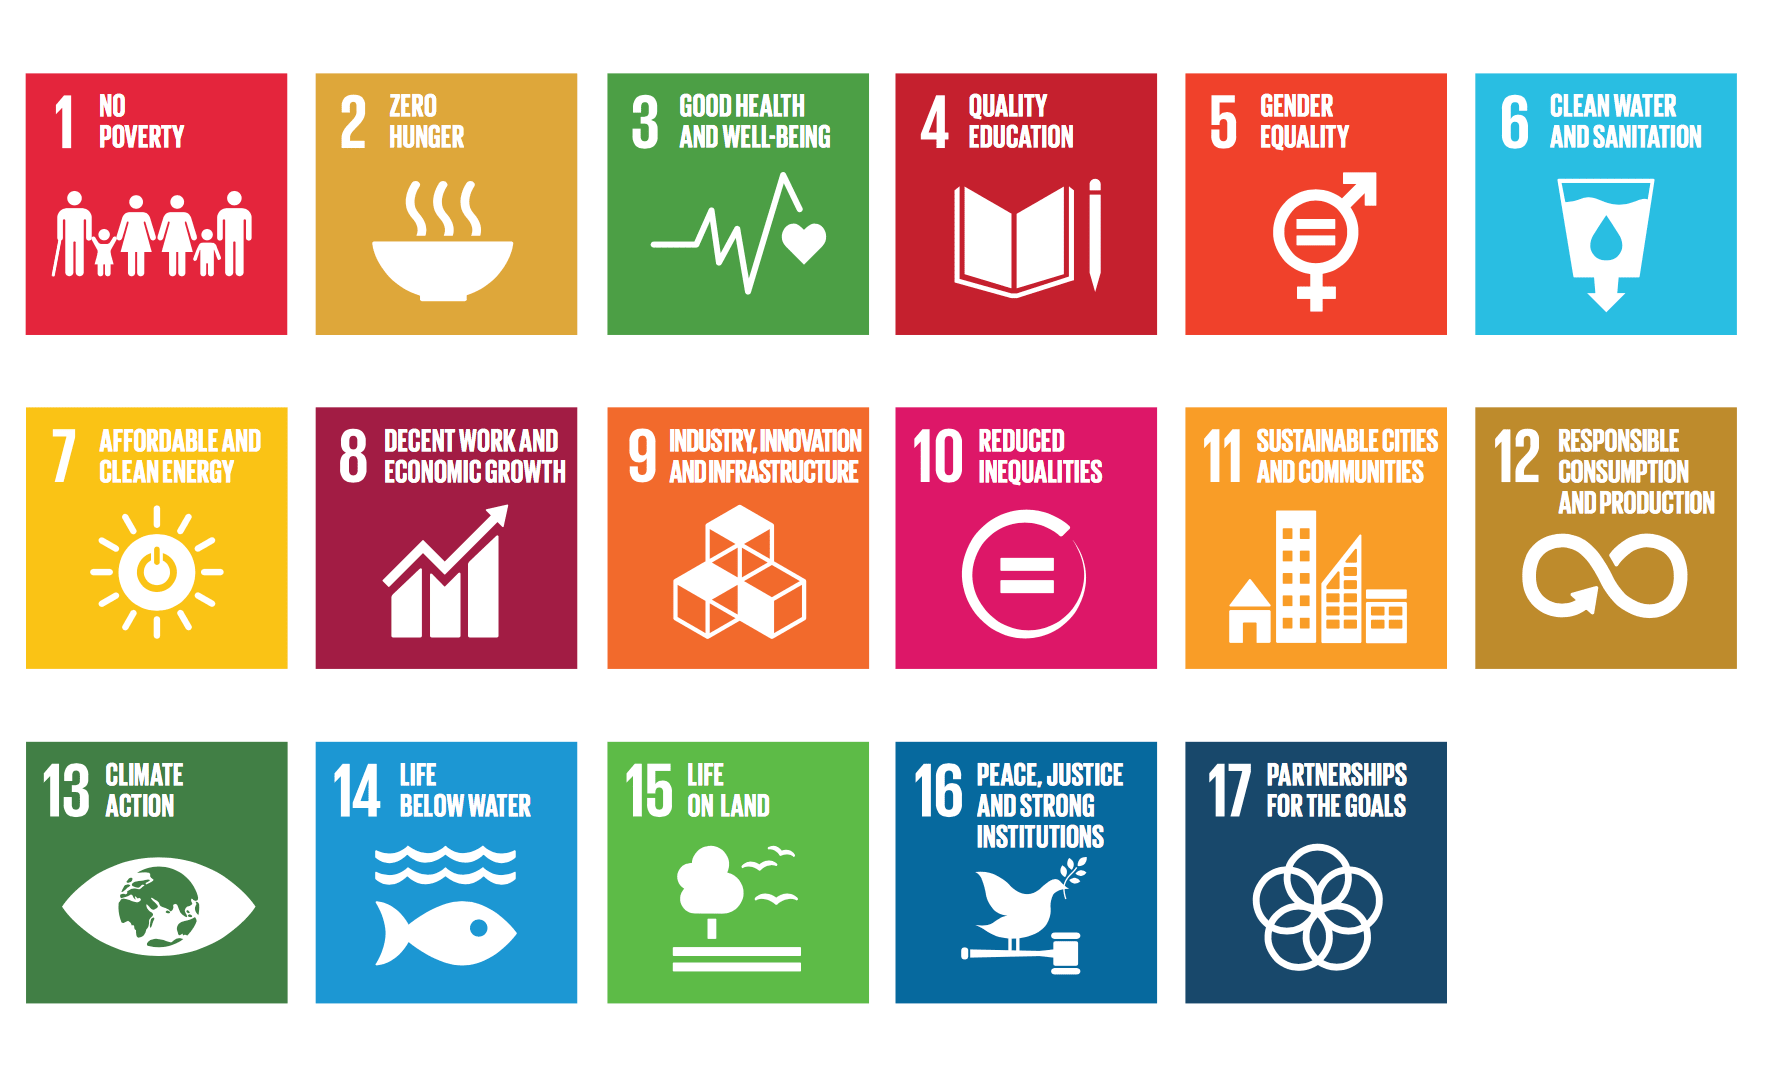 Italy and the 17 SDGs at a glance